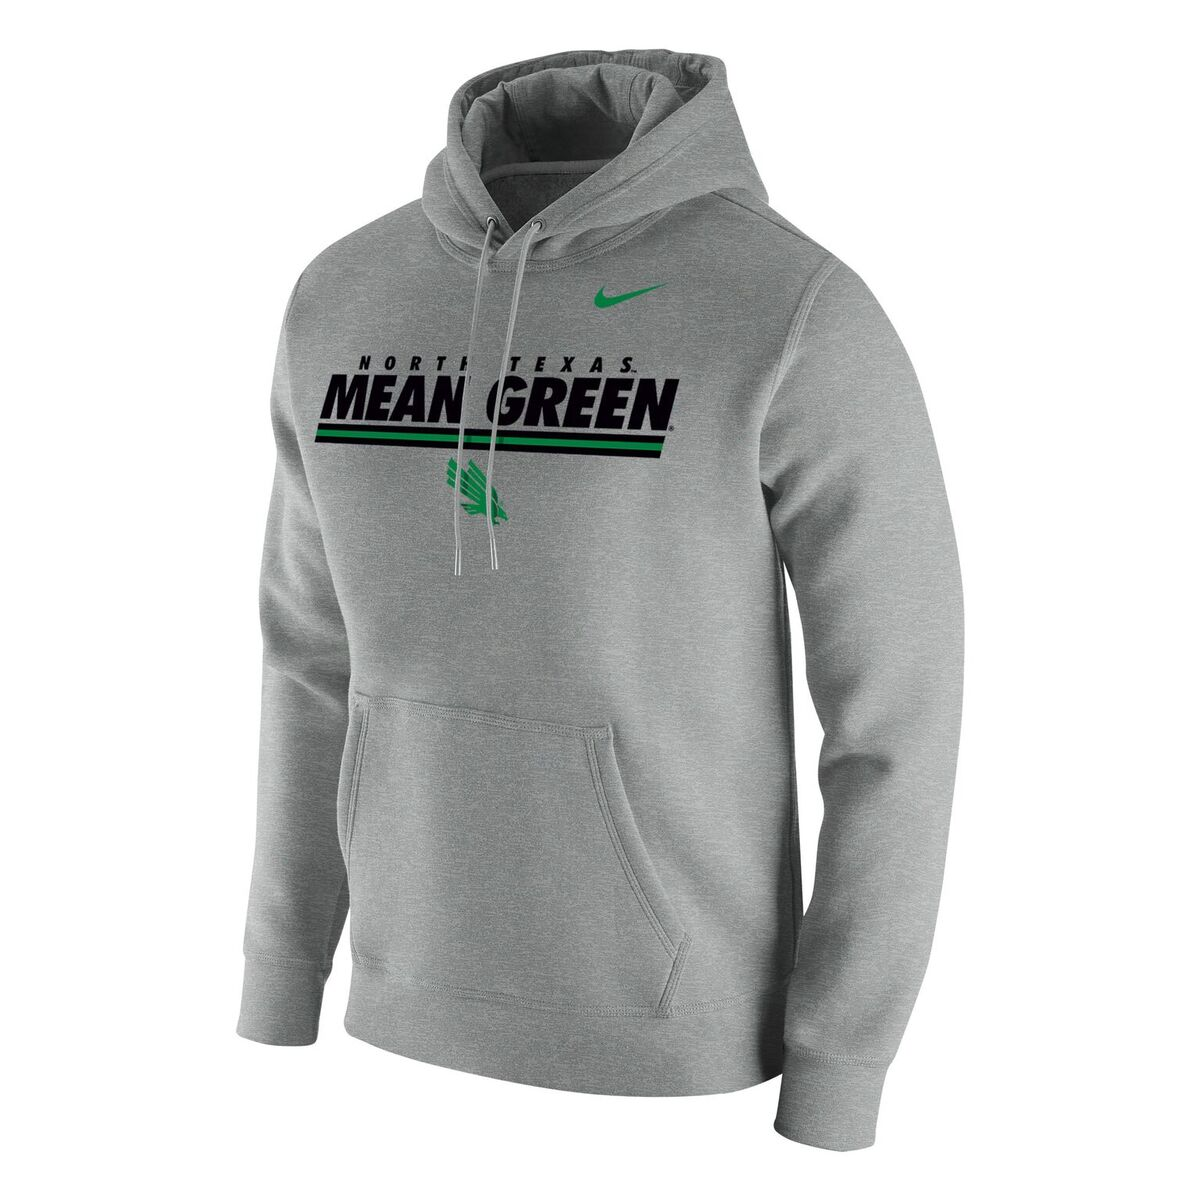 NORTH TEXAS CLUB FLEECE